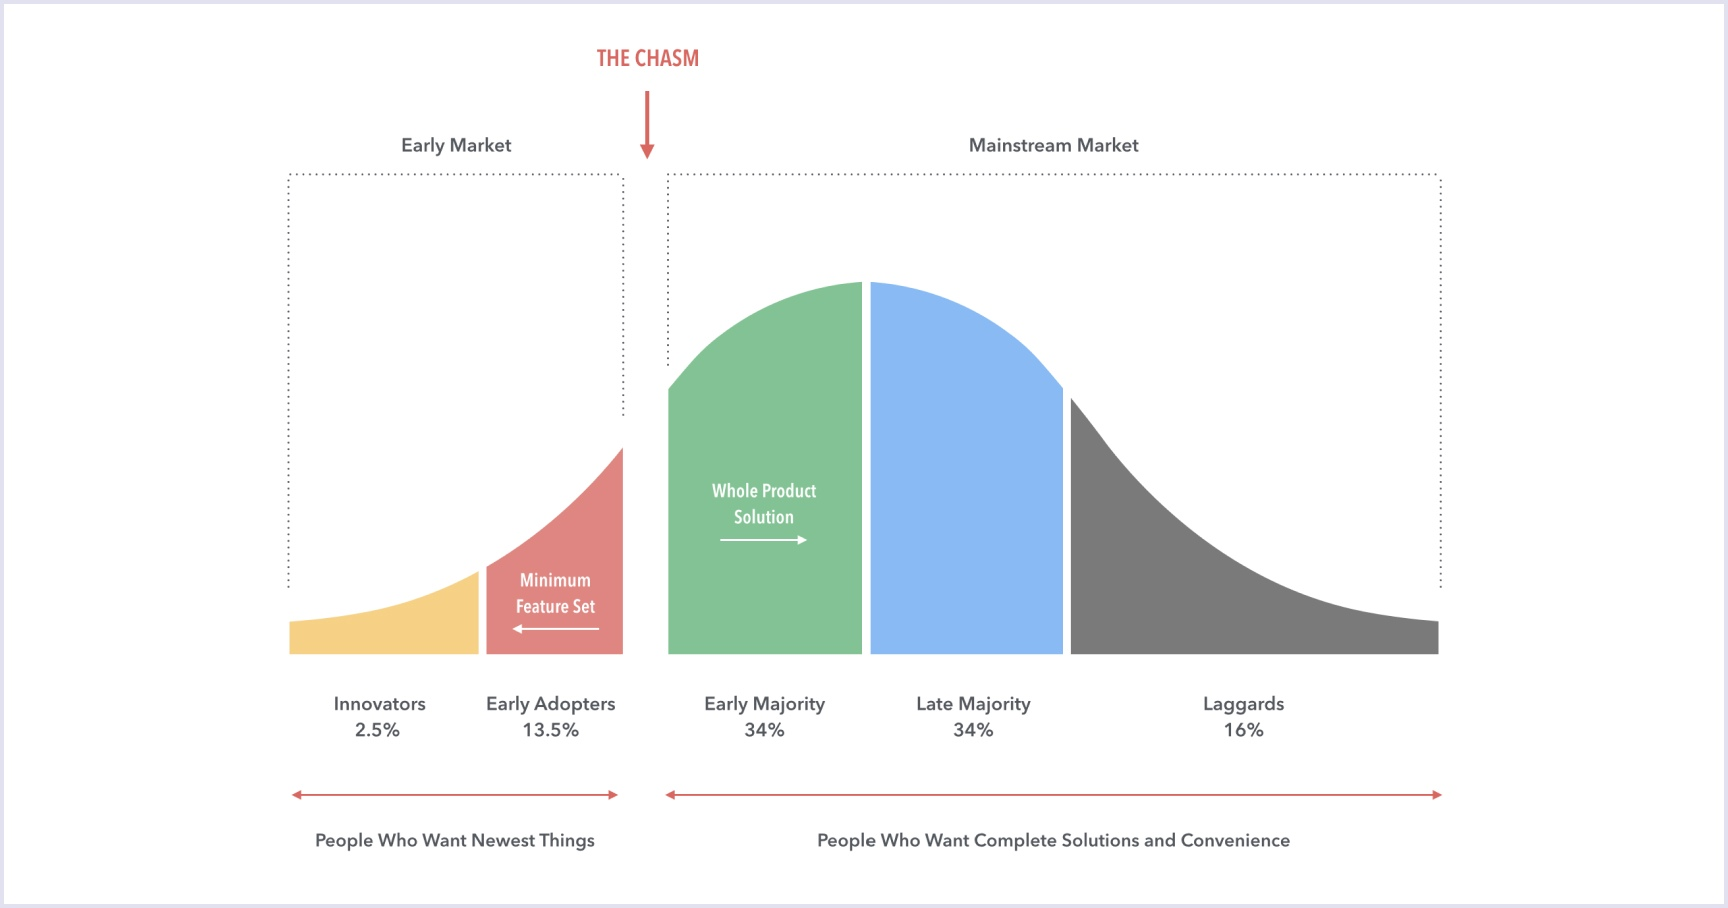 The chasm between Early Market and Mainstream Market